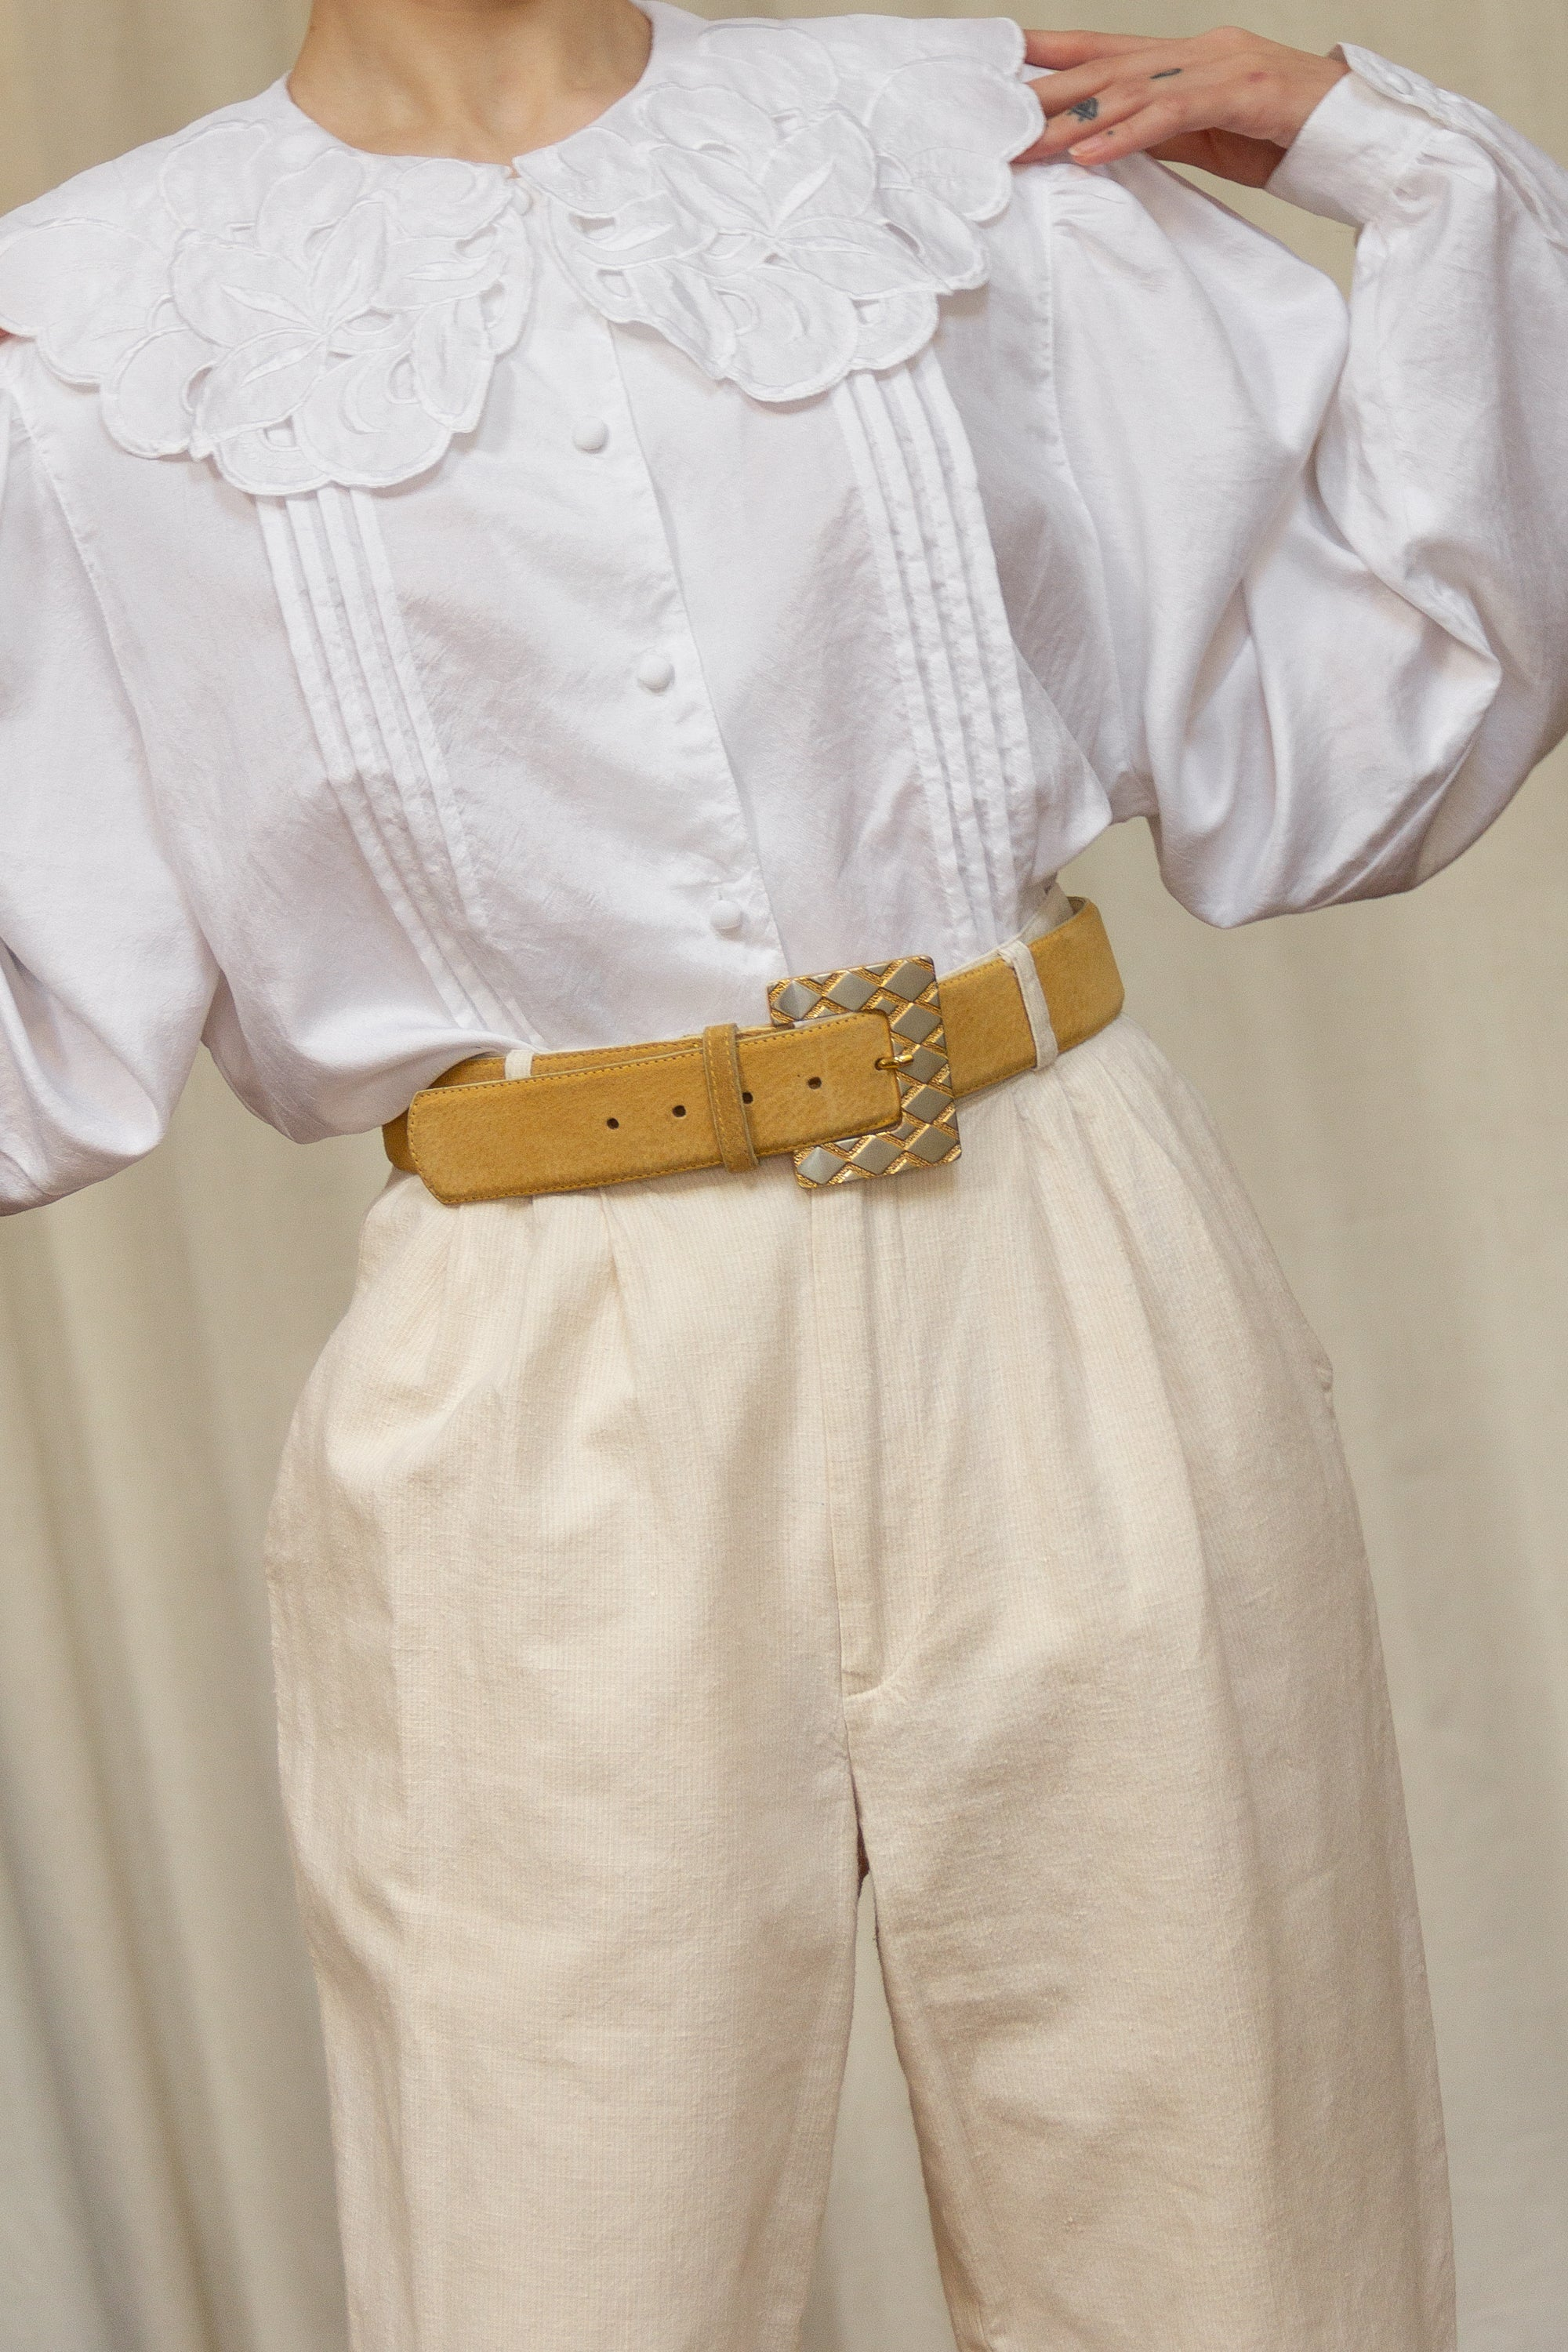 1980s Mustard Square Buckle Belt